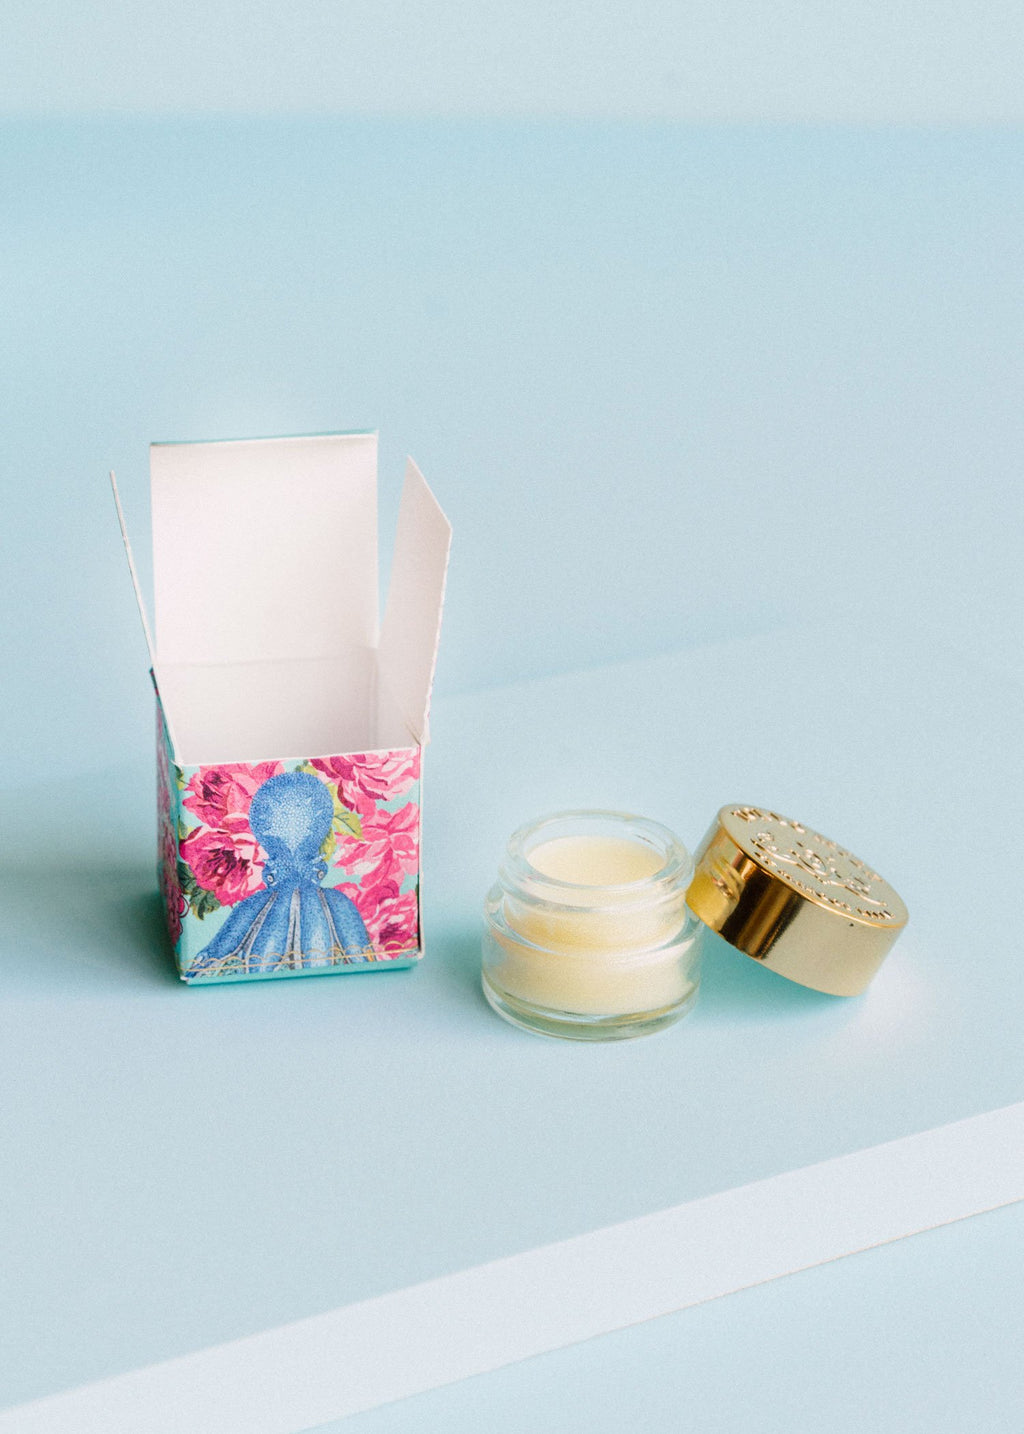 Age Of Aquarius Lip Balm in Gift Box